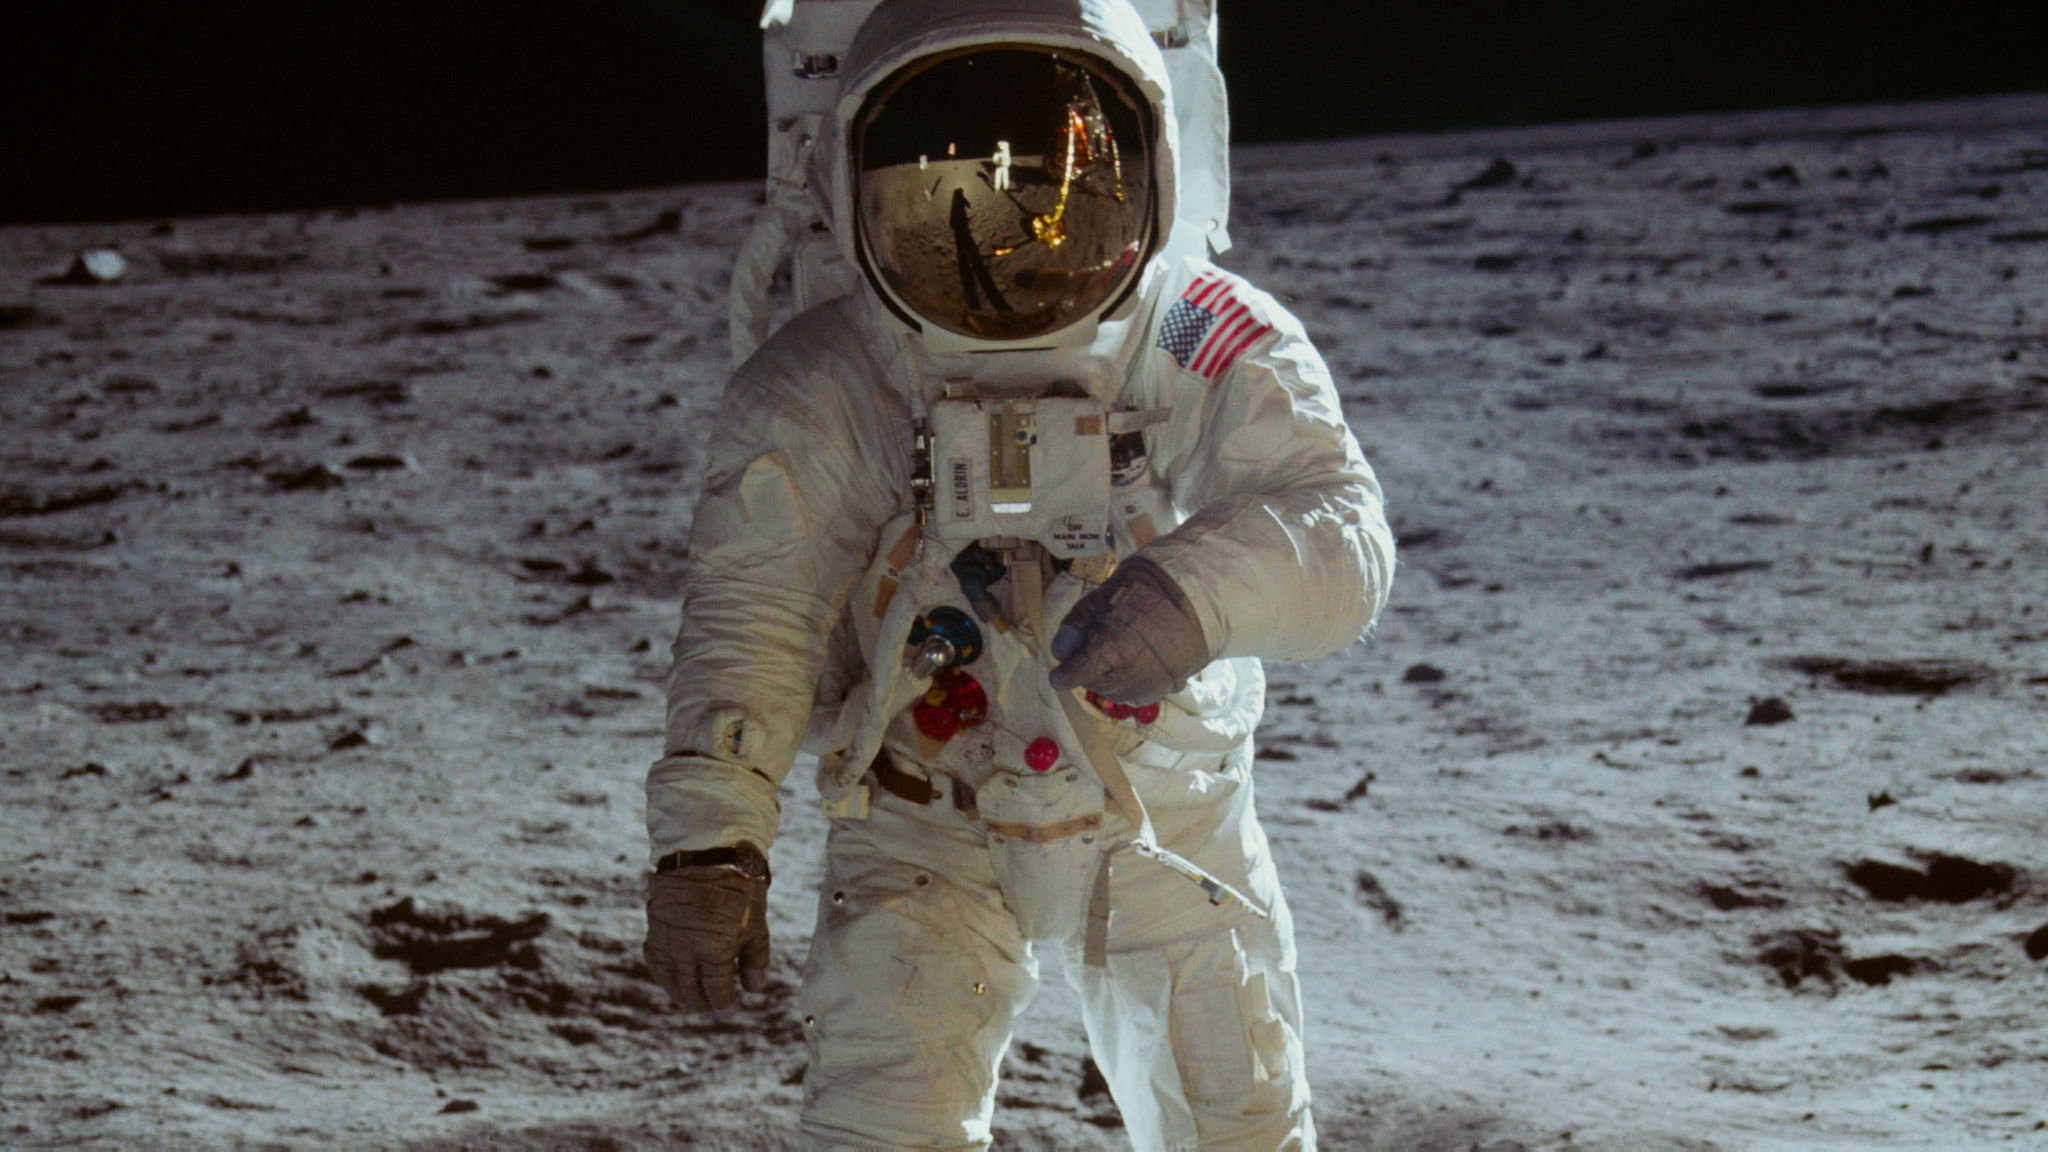 Apollo 11 and Armstrong — two films to make us see the Moon landing